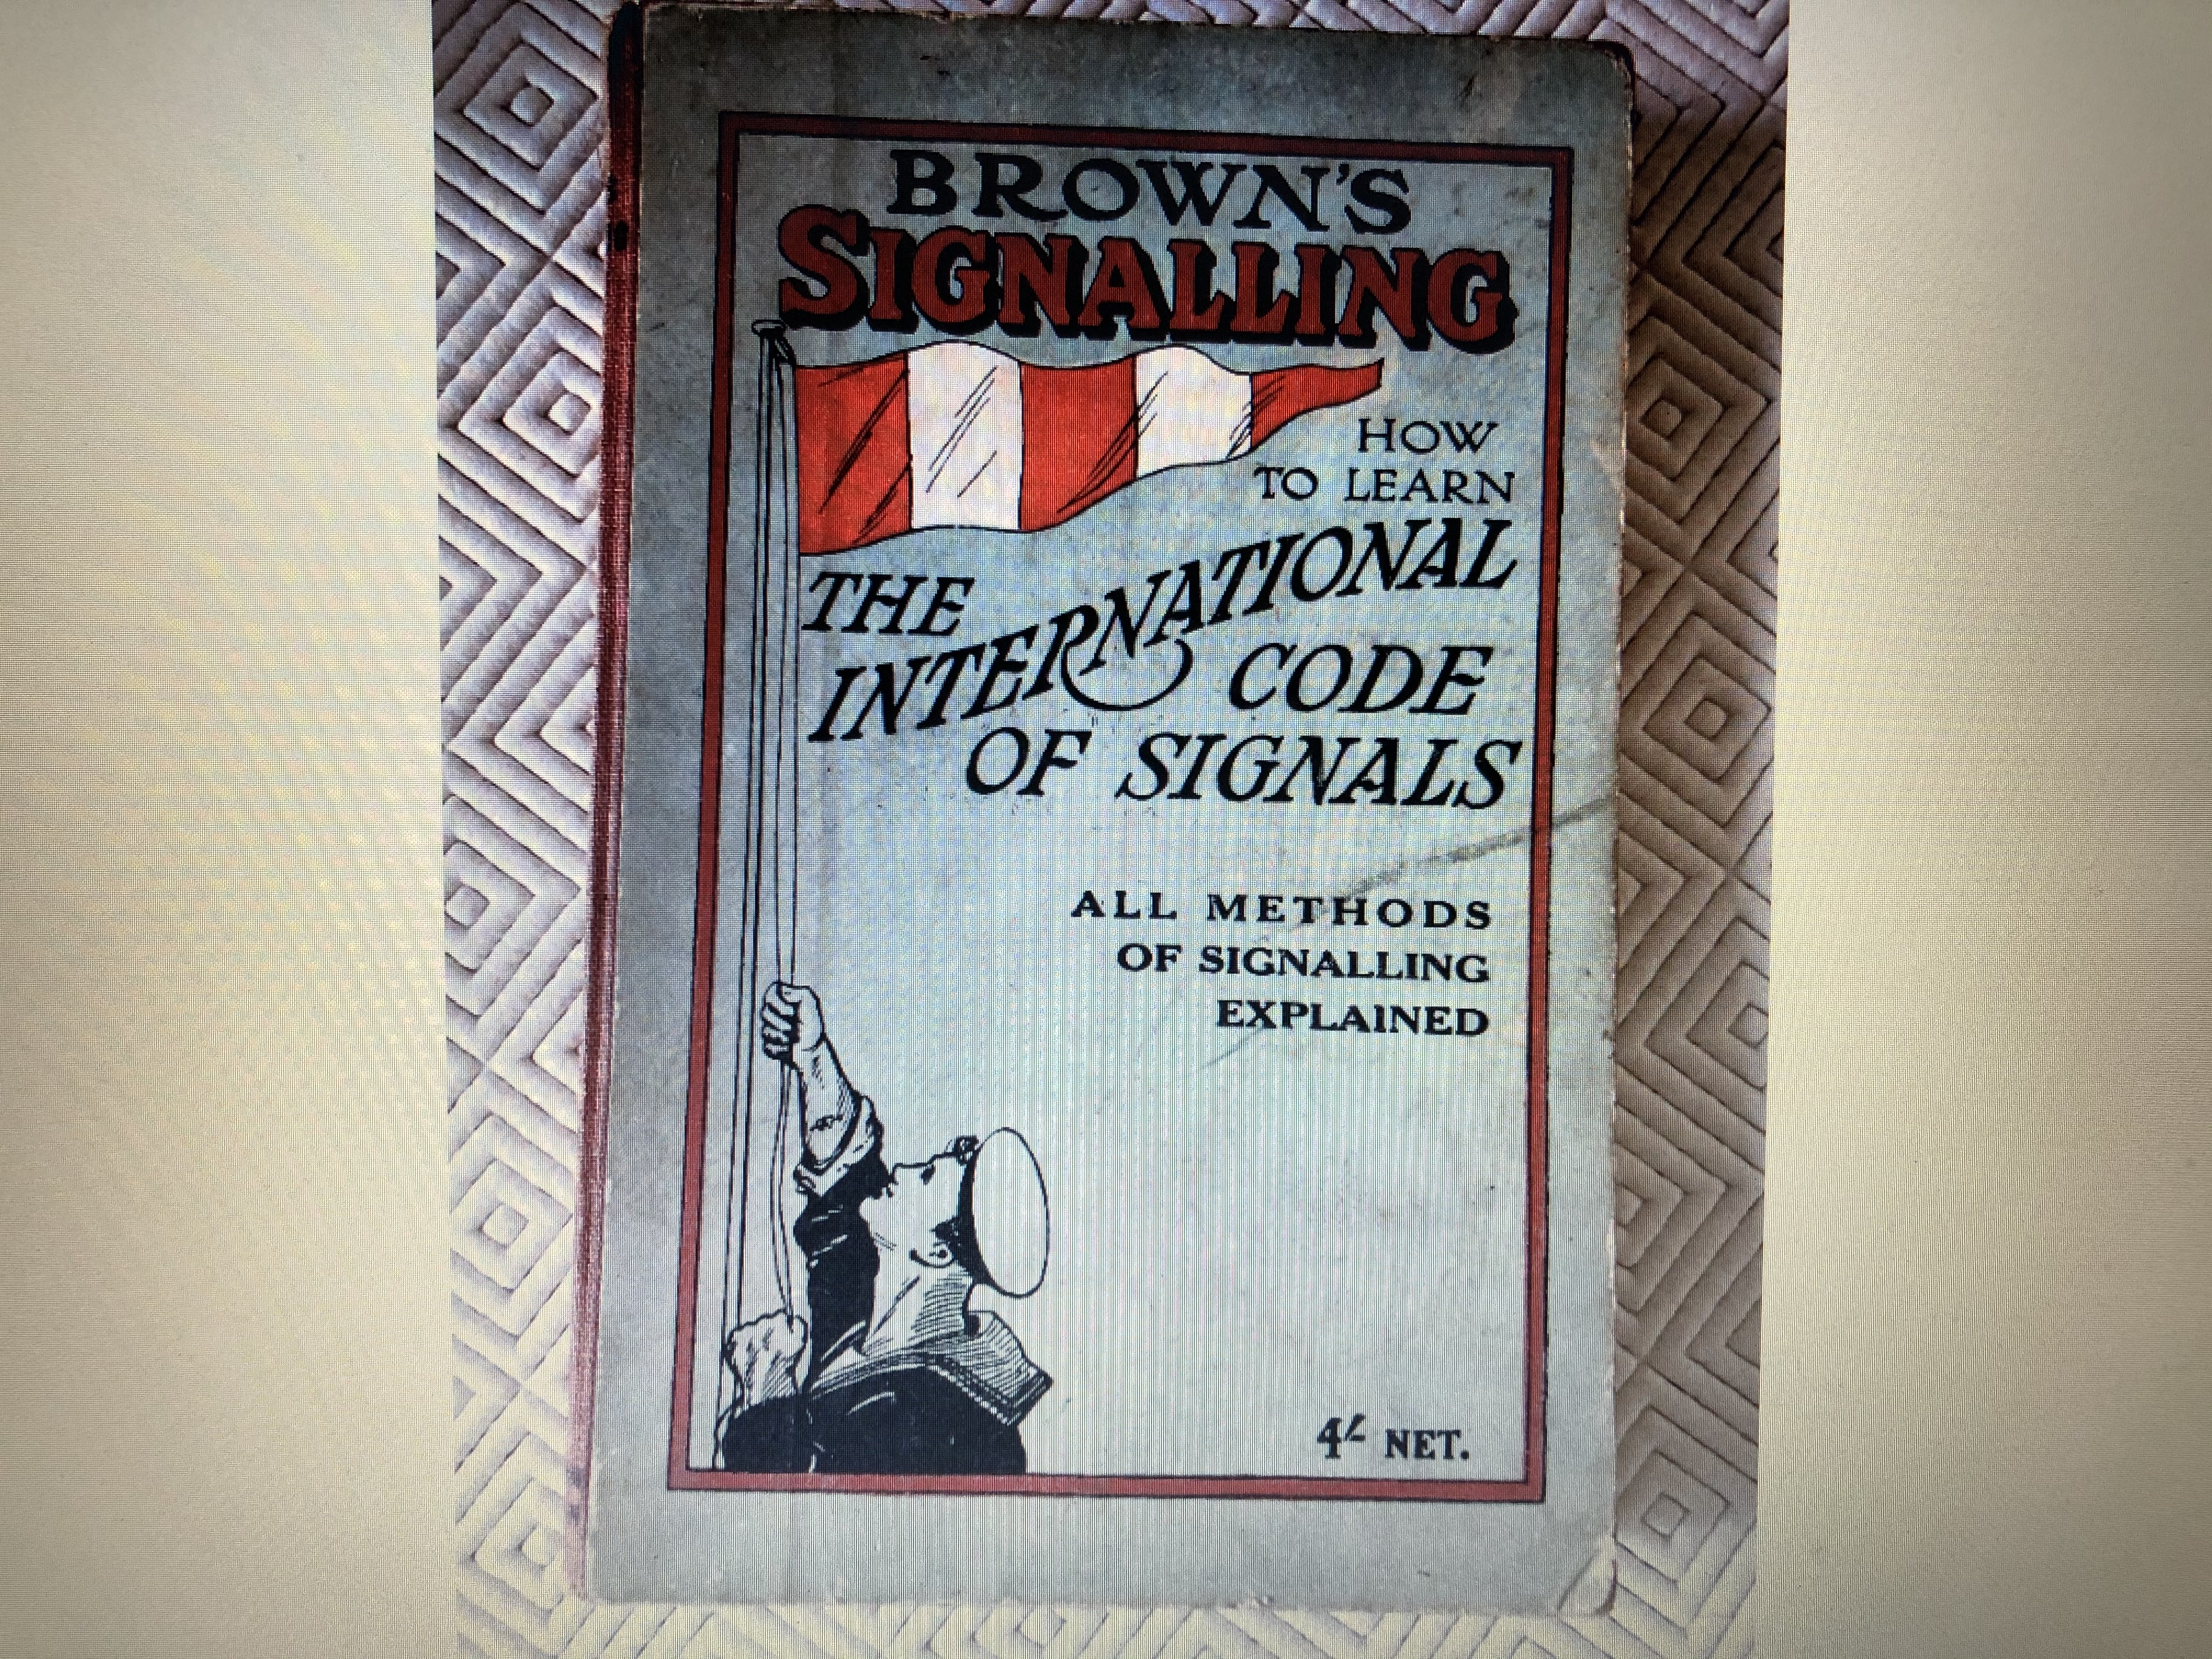 ORIGINAL EARLY EDITION BOOK FROM 1941 ENTITLED BROWN'S SIGNALLING